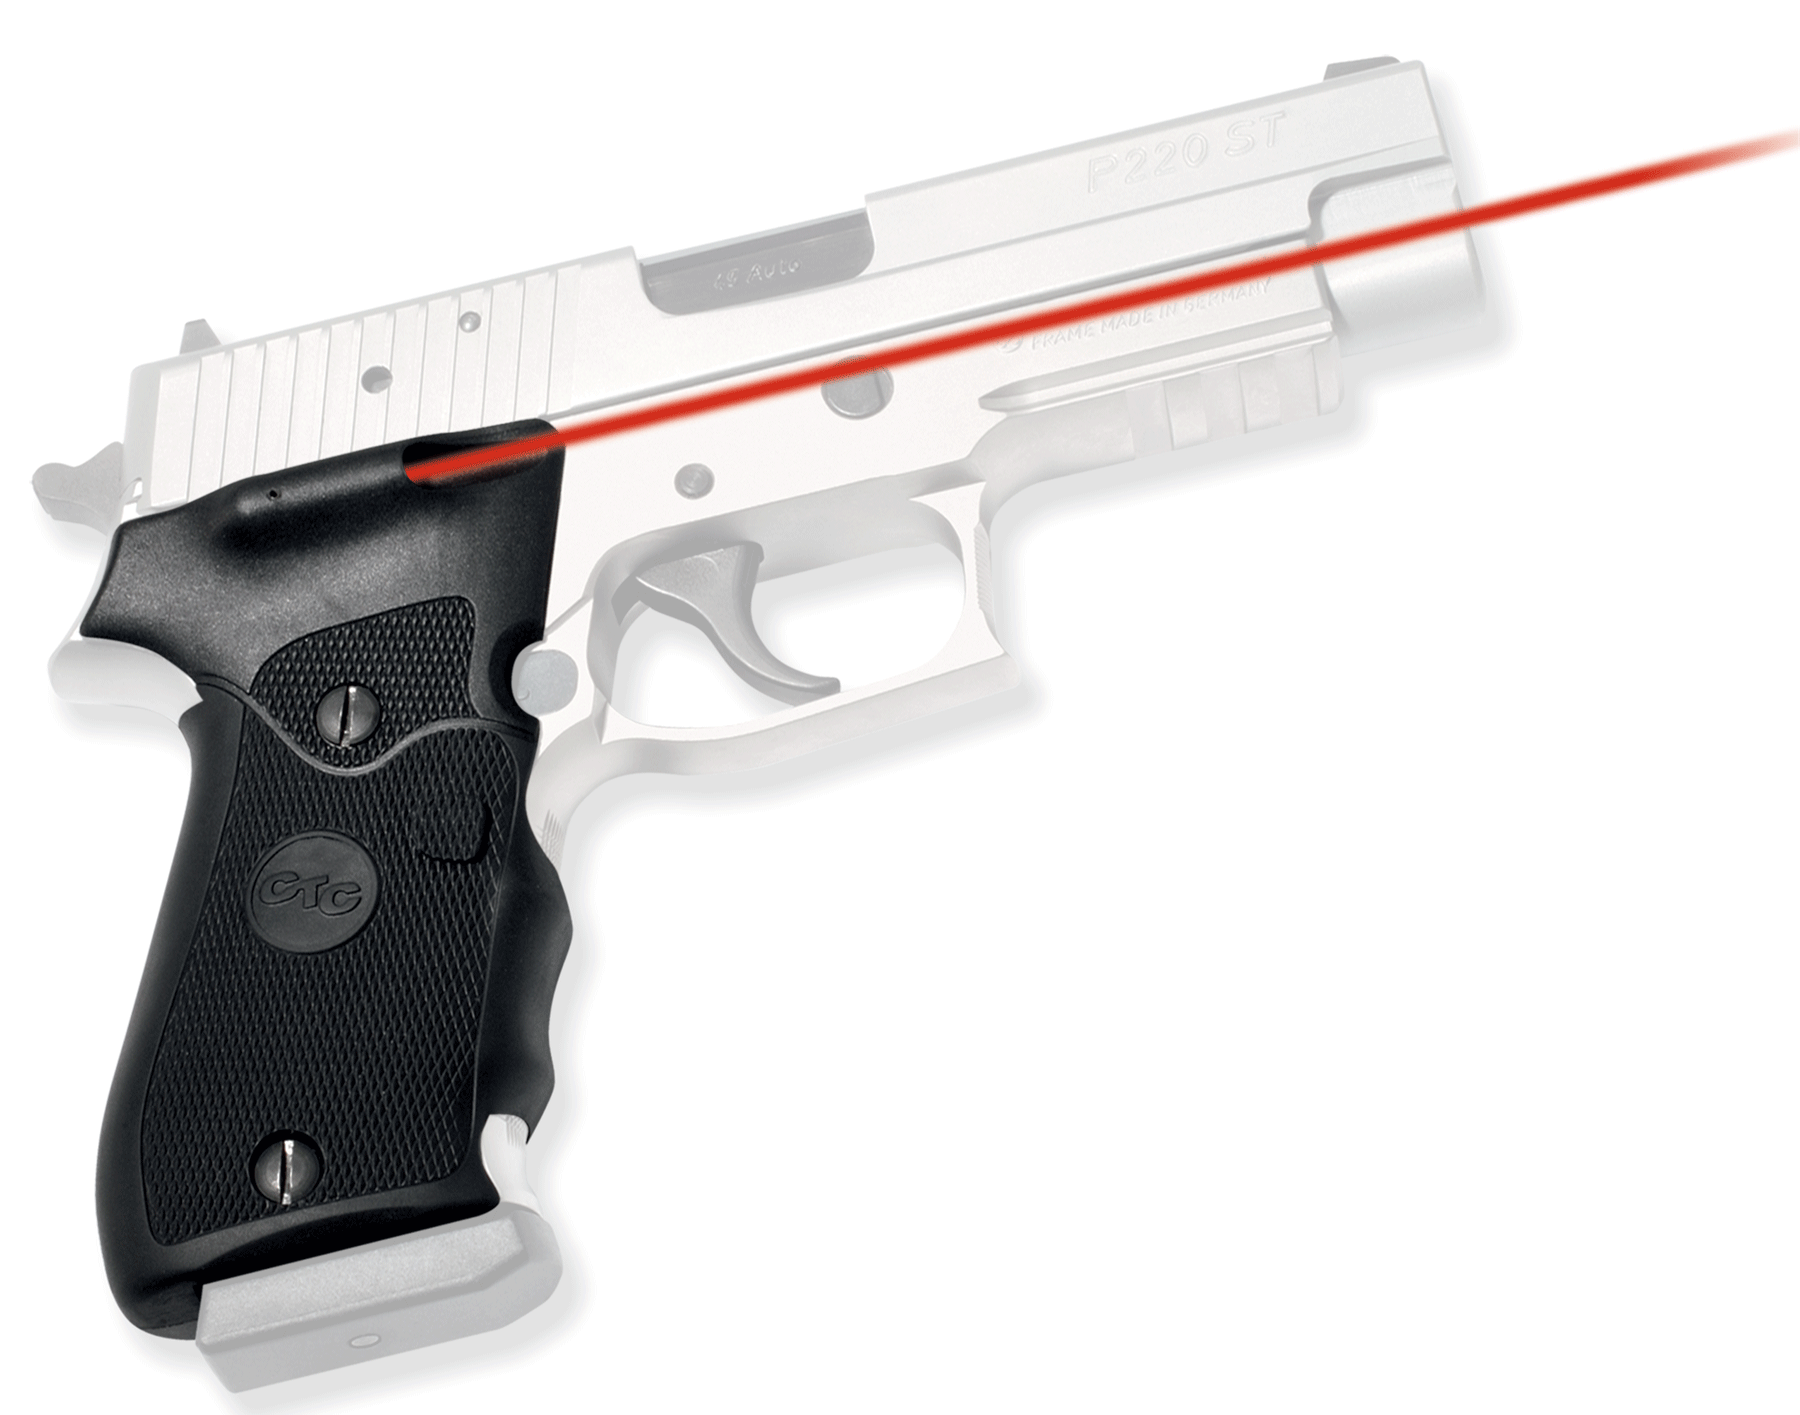 Crimson Trace LG320 Lasergrips Red Laser Sig 220 Front Activation Blk